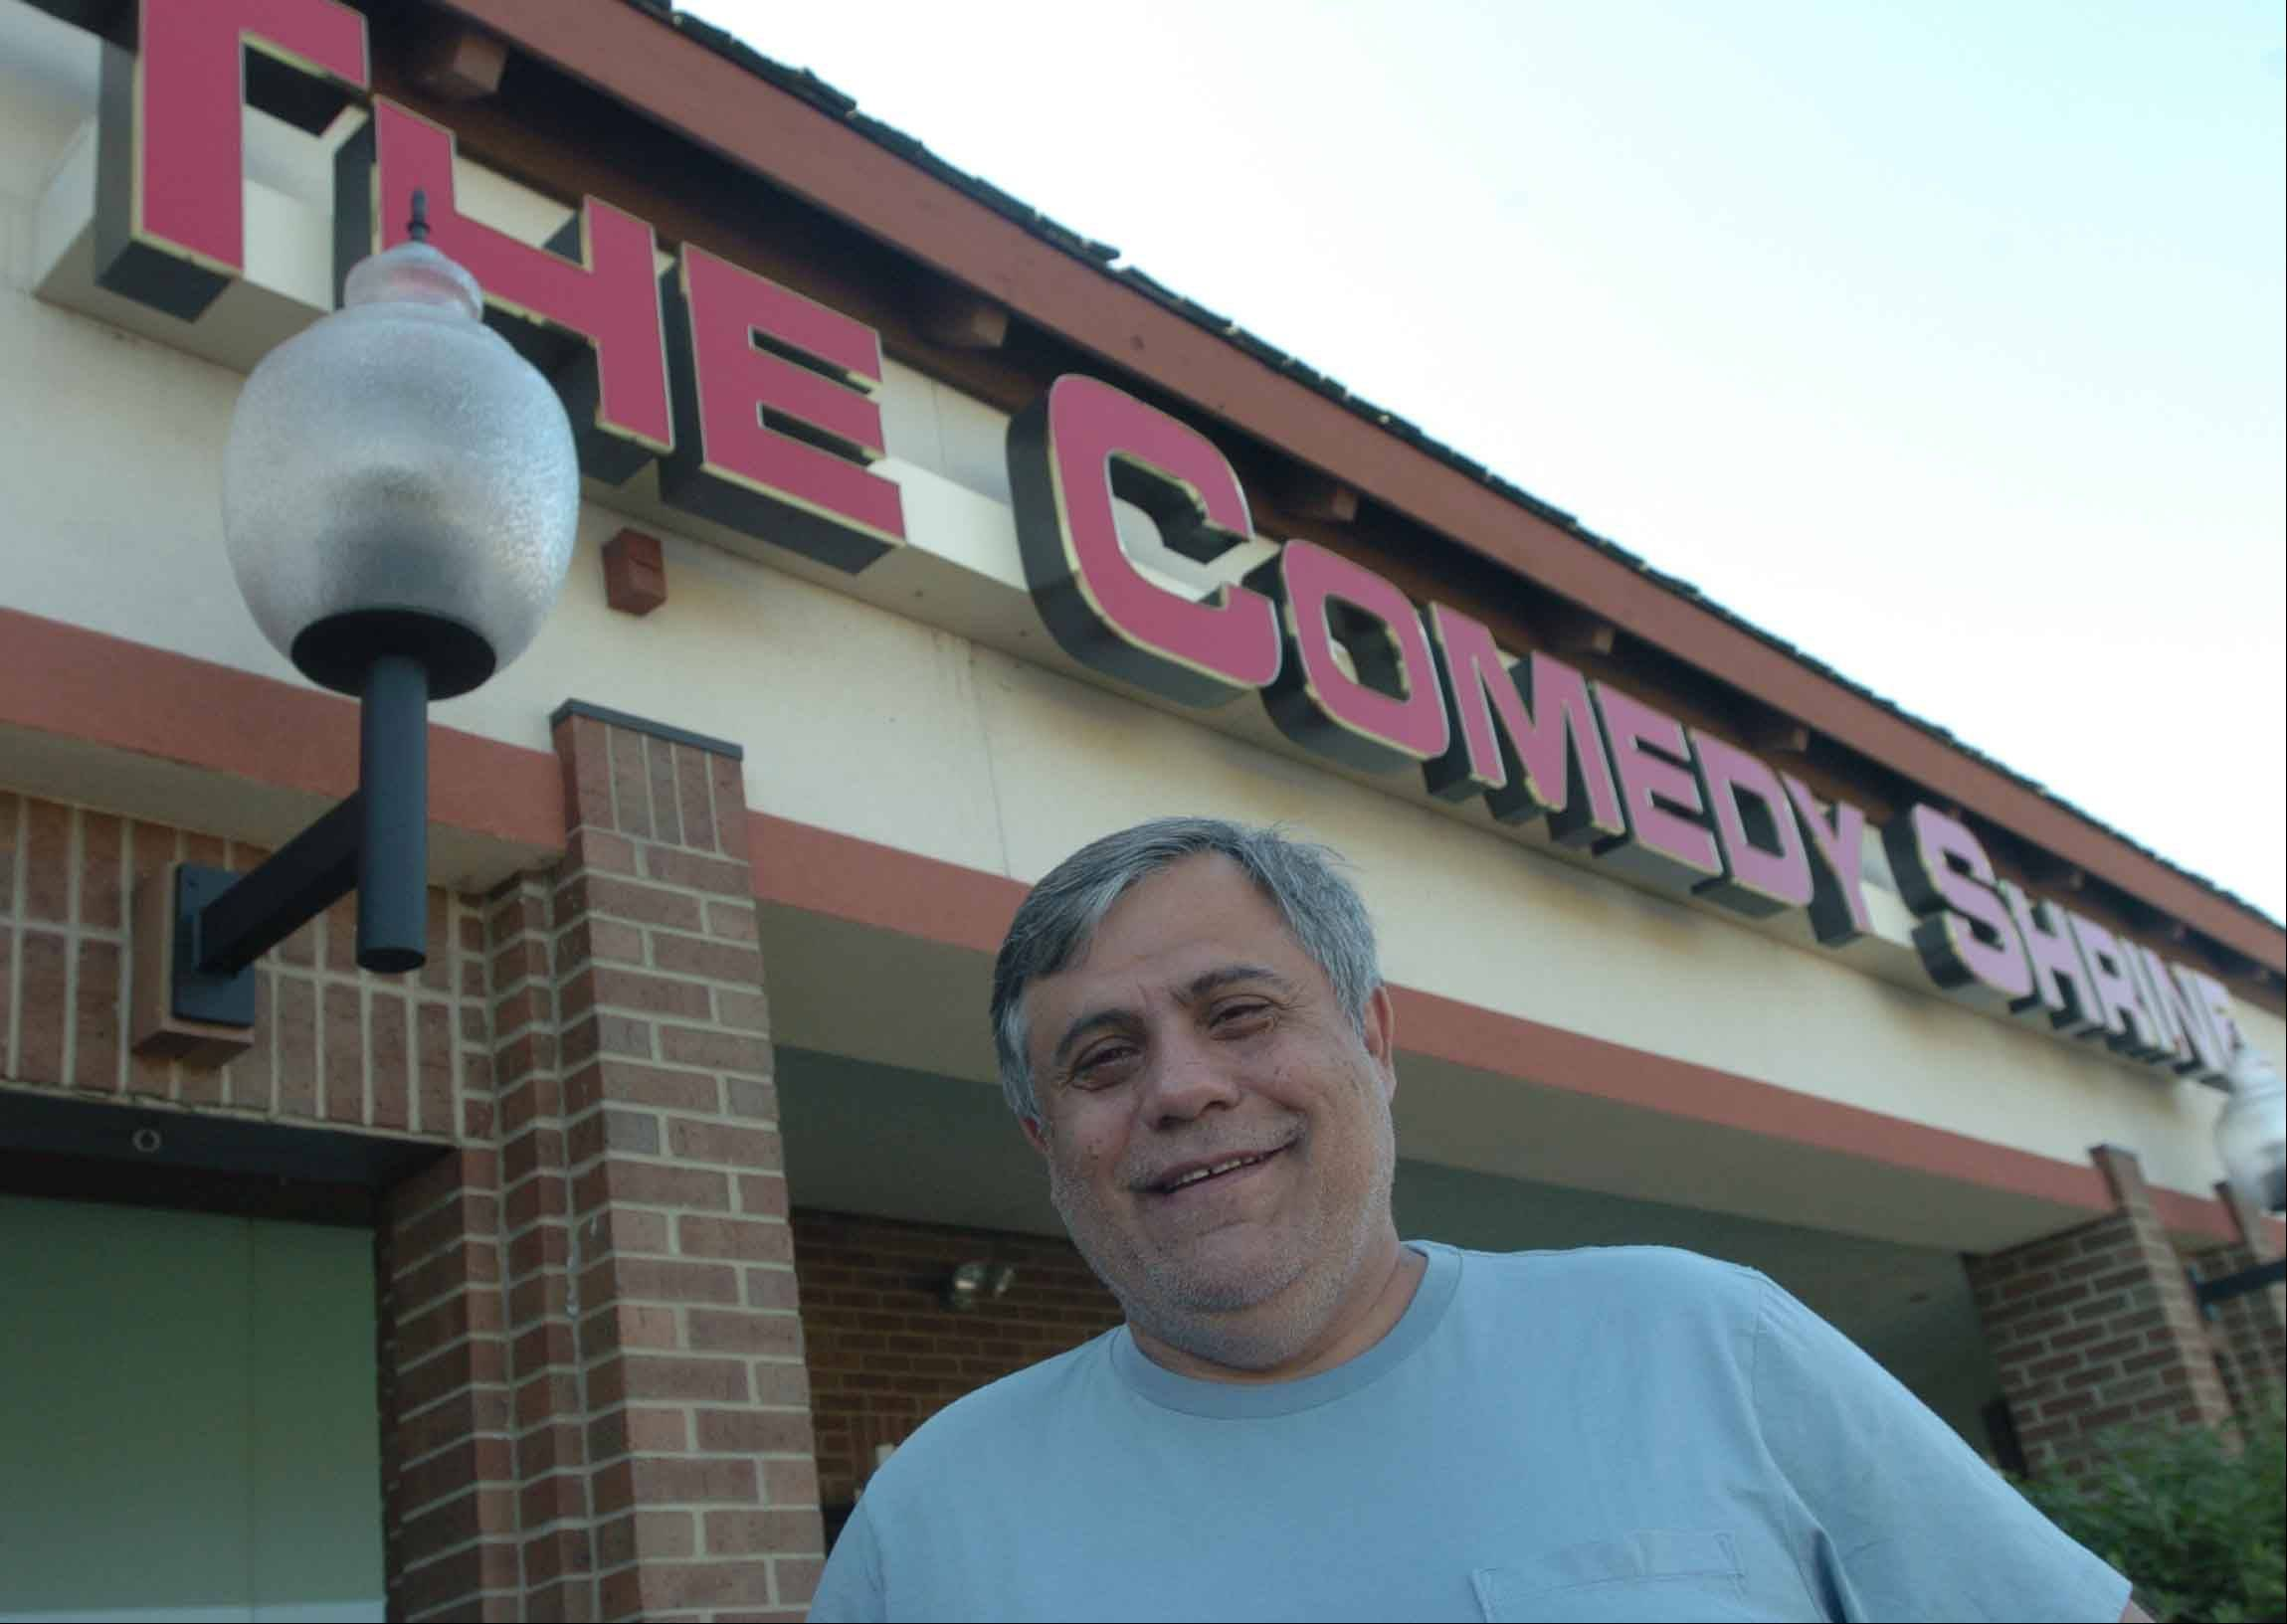 Dave Sinker, owner of The Comedy Shrine, says his new venue will have a true theater feel when it reopens today in Aurora.